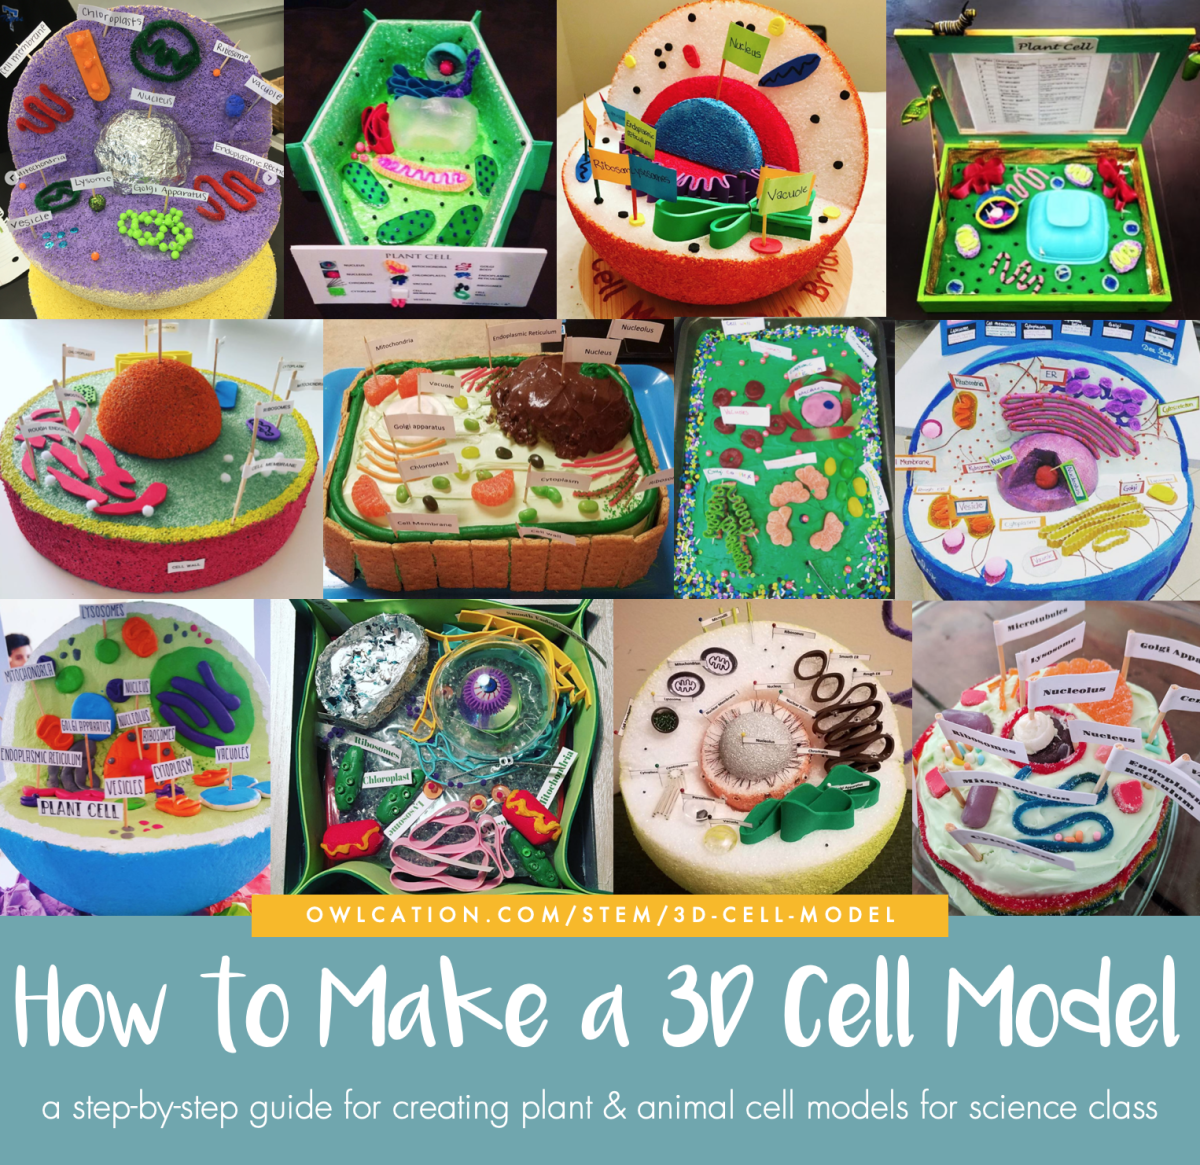 A step-by-step tutorial for creating 3D plant and animal cell models.